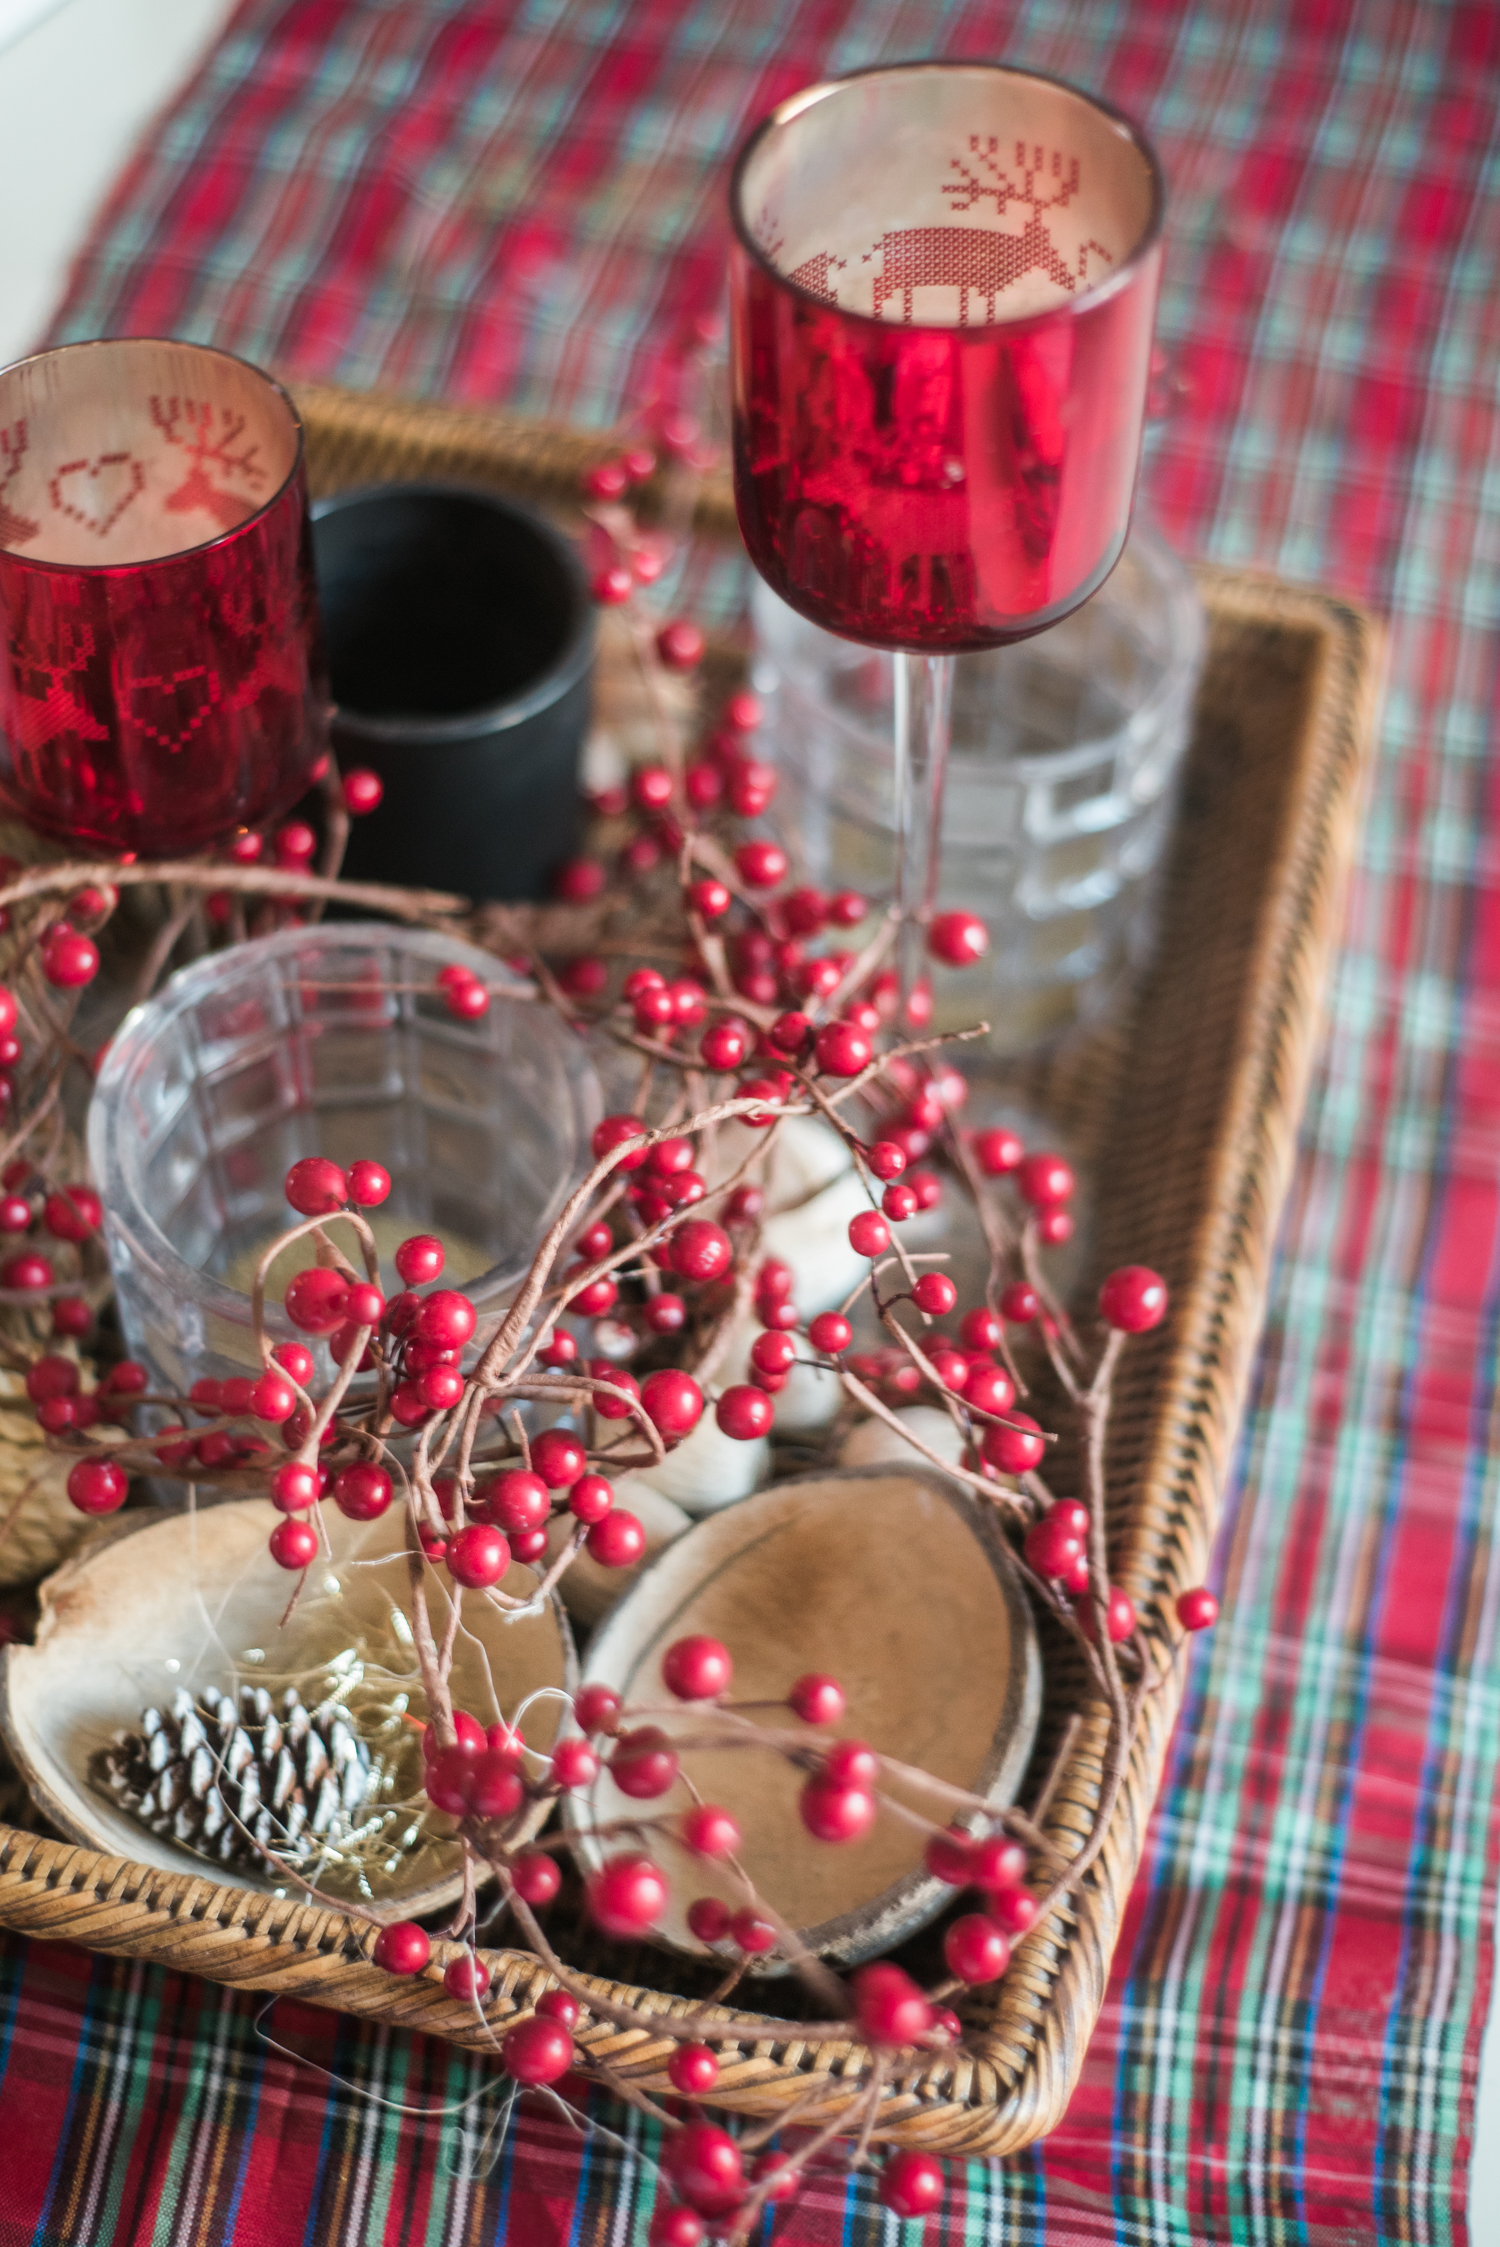 Traditional-Christmas-Decor-Tree-Table-Ideas-Style-To-Copy-AnaisStoelen-16.jpg